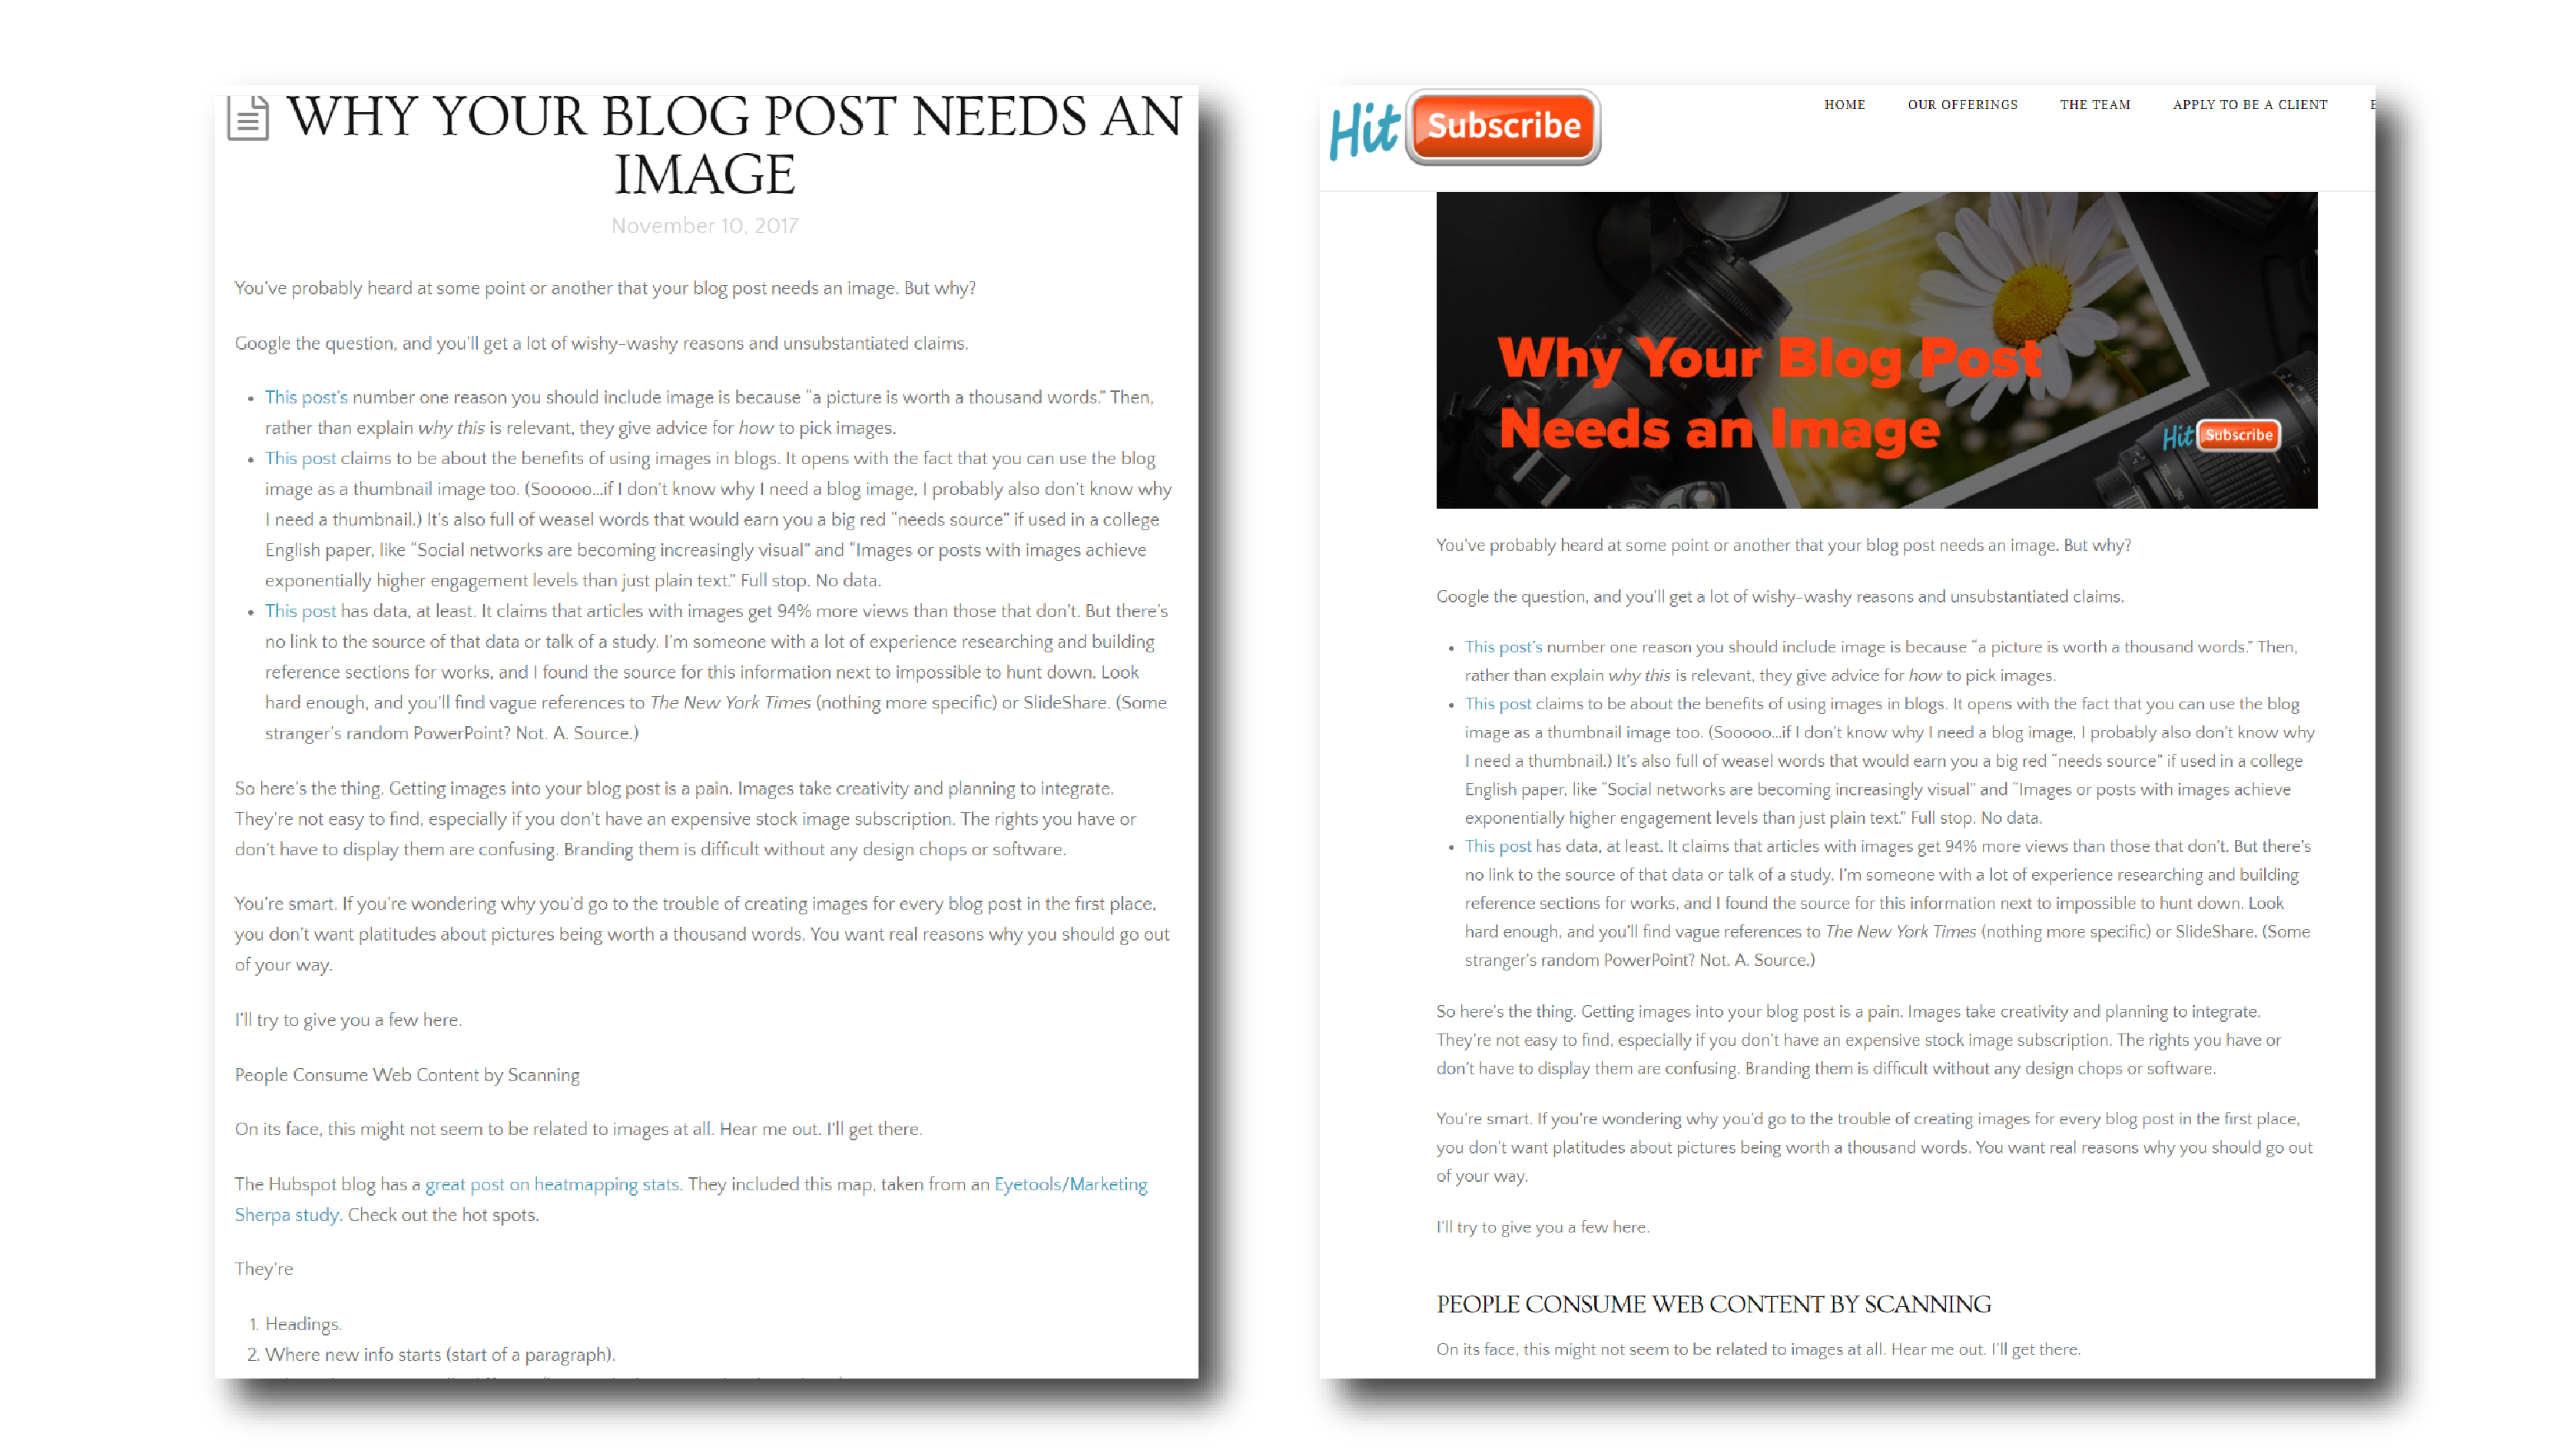 A comparison of this blog post with no images to this blog post with images